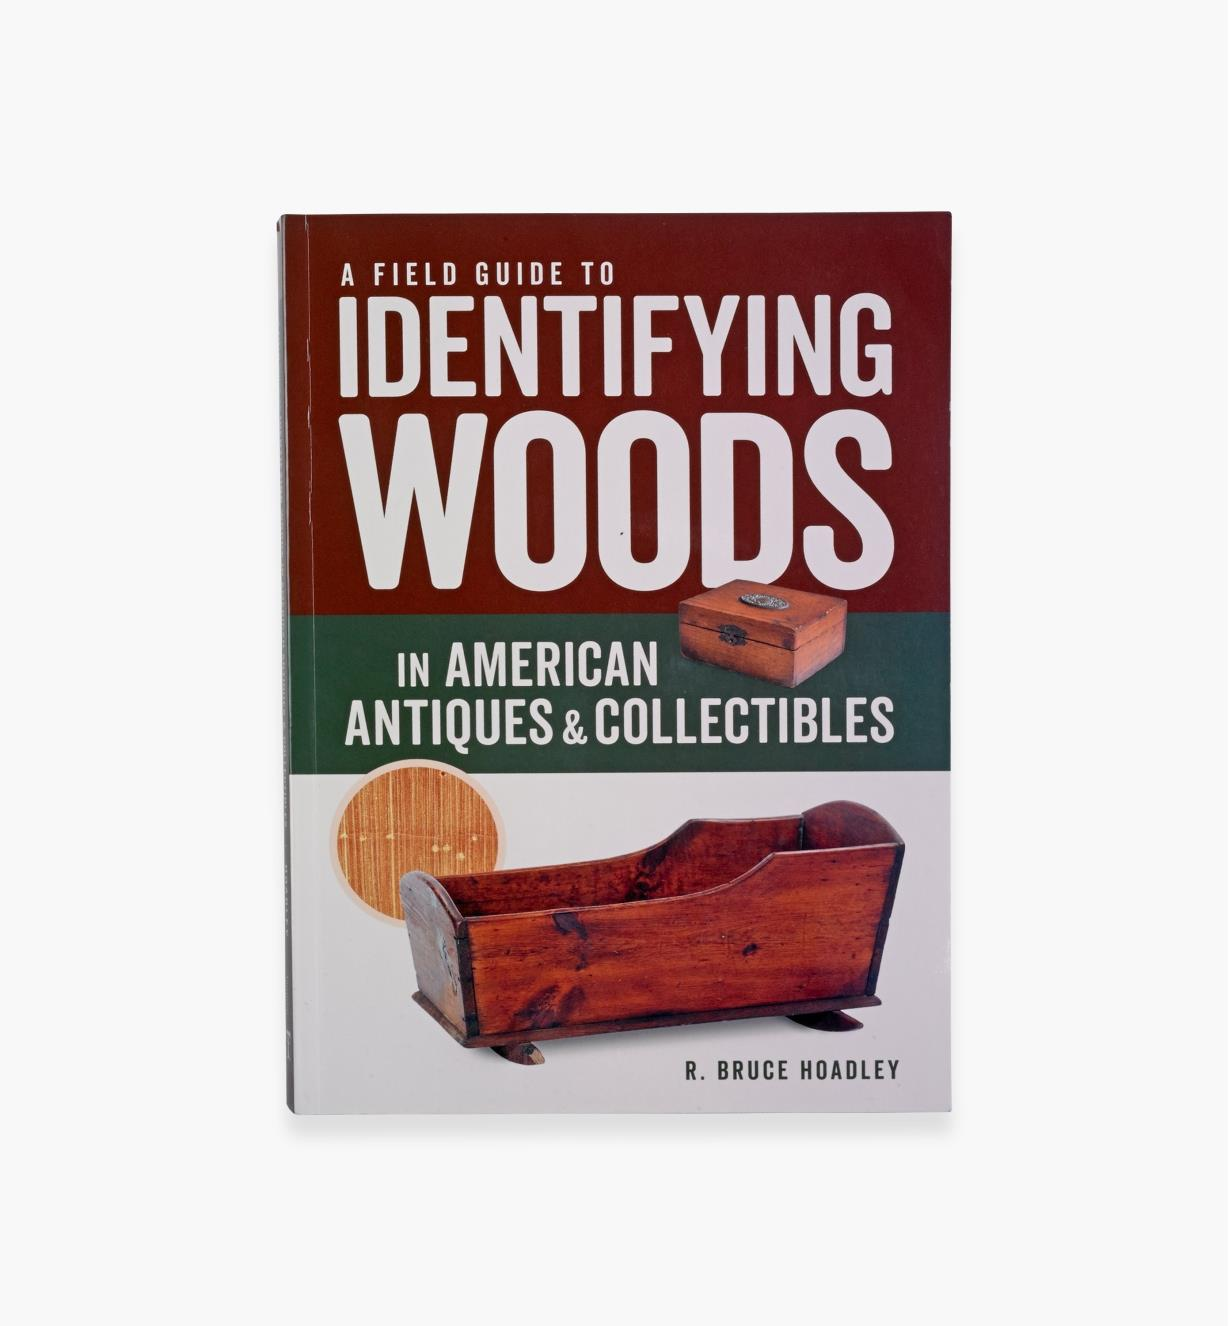 73L0218 - Field Guide to Identifying Woods in American Antiques and Collectibles